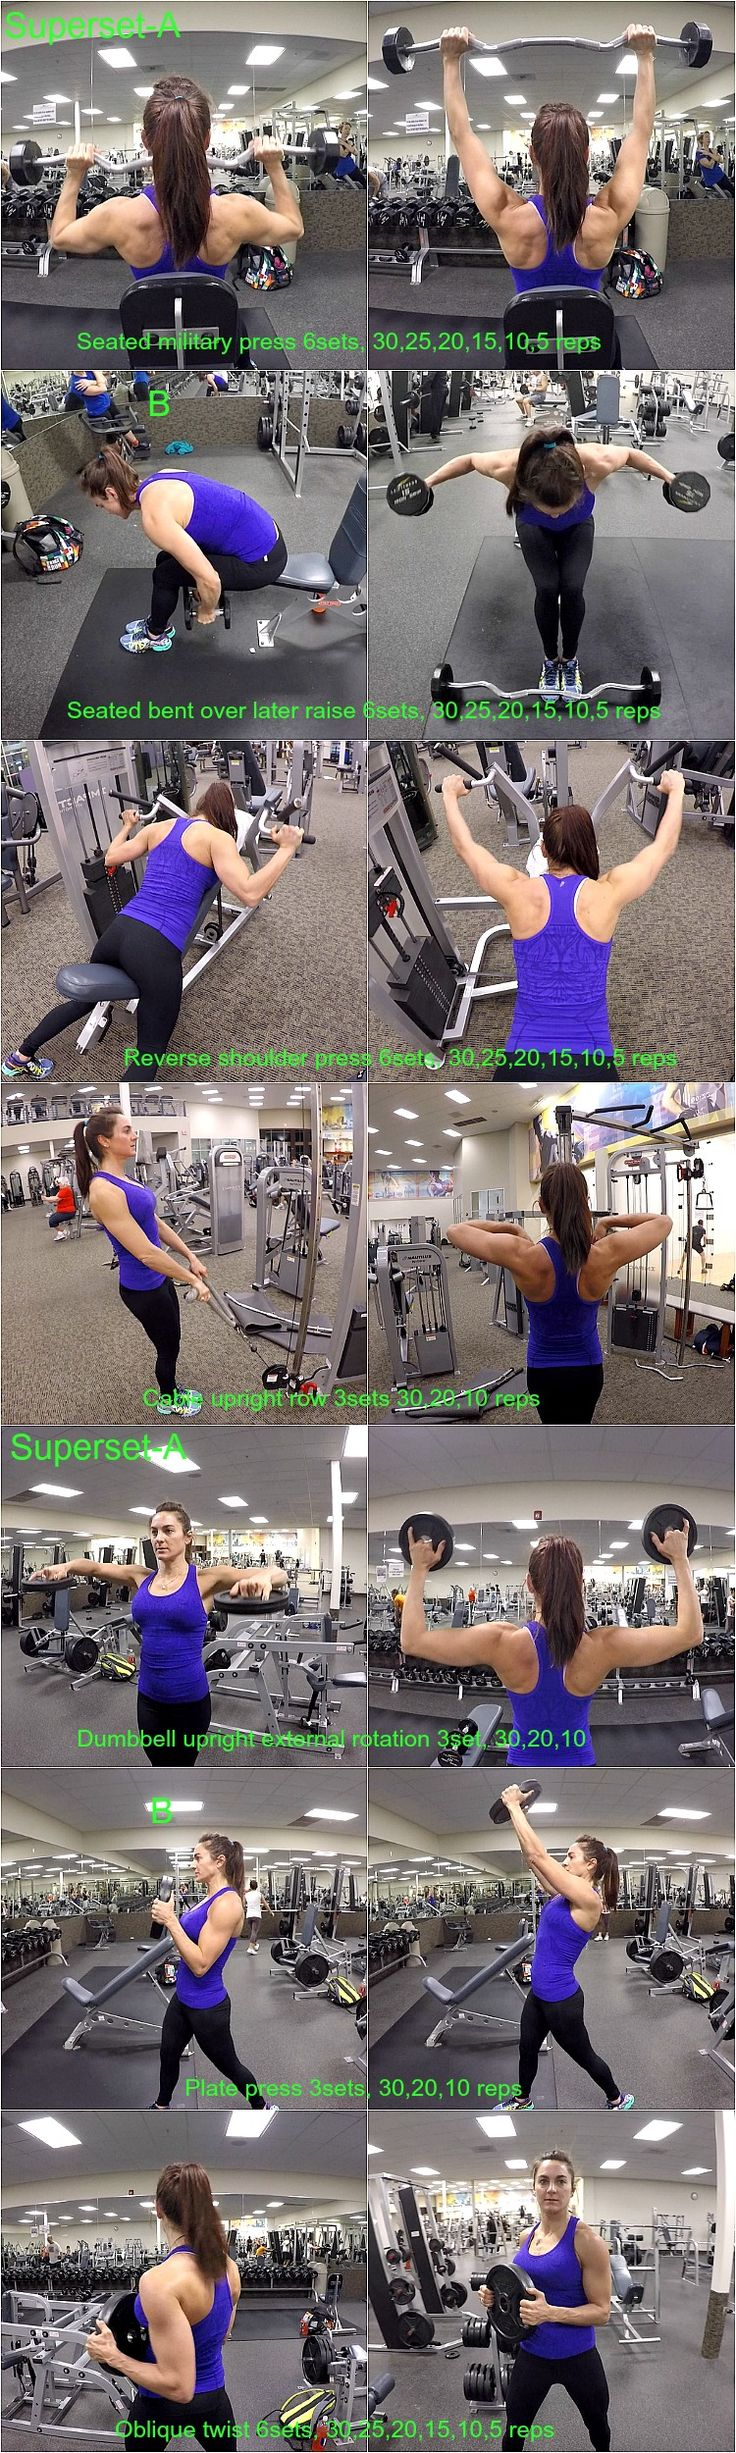 10 Weeks To Fitness Day-31: Shoulders & Obliques and we are building our shoulders and working our obliques.